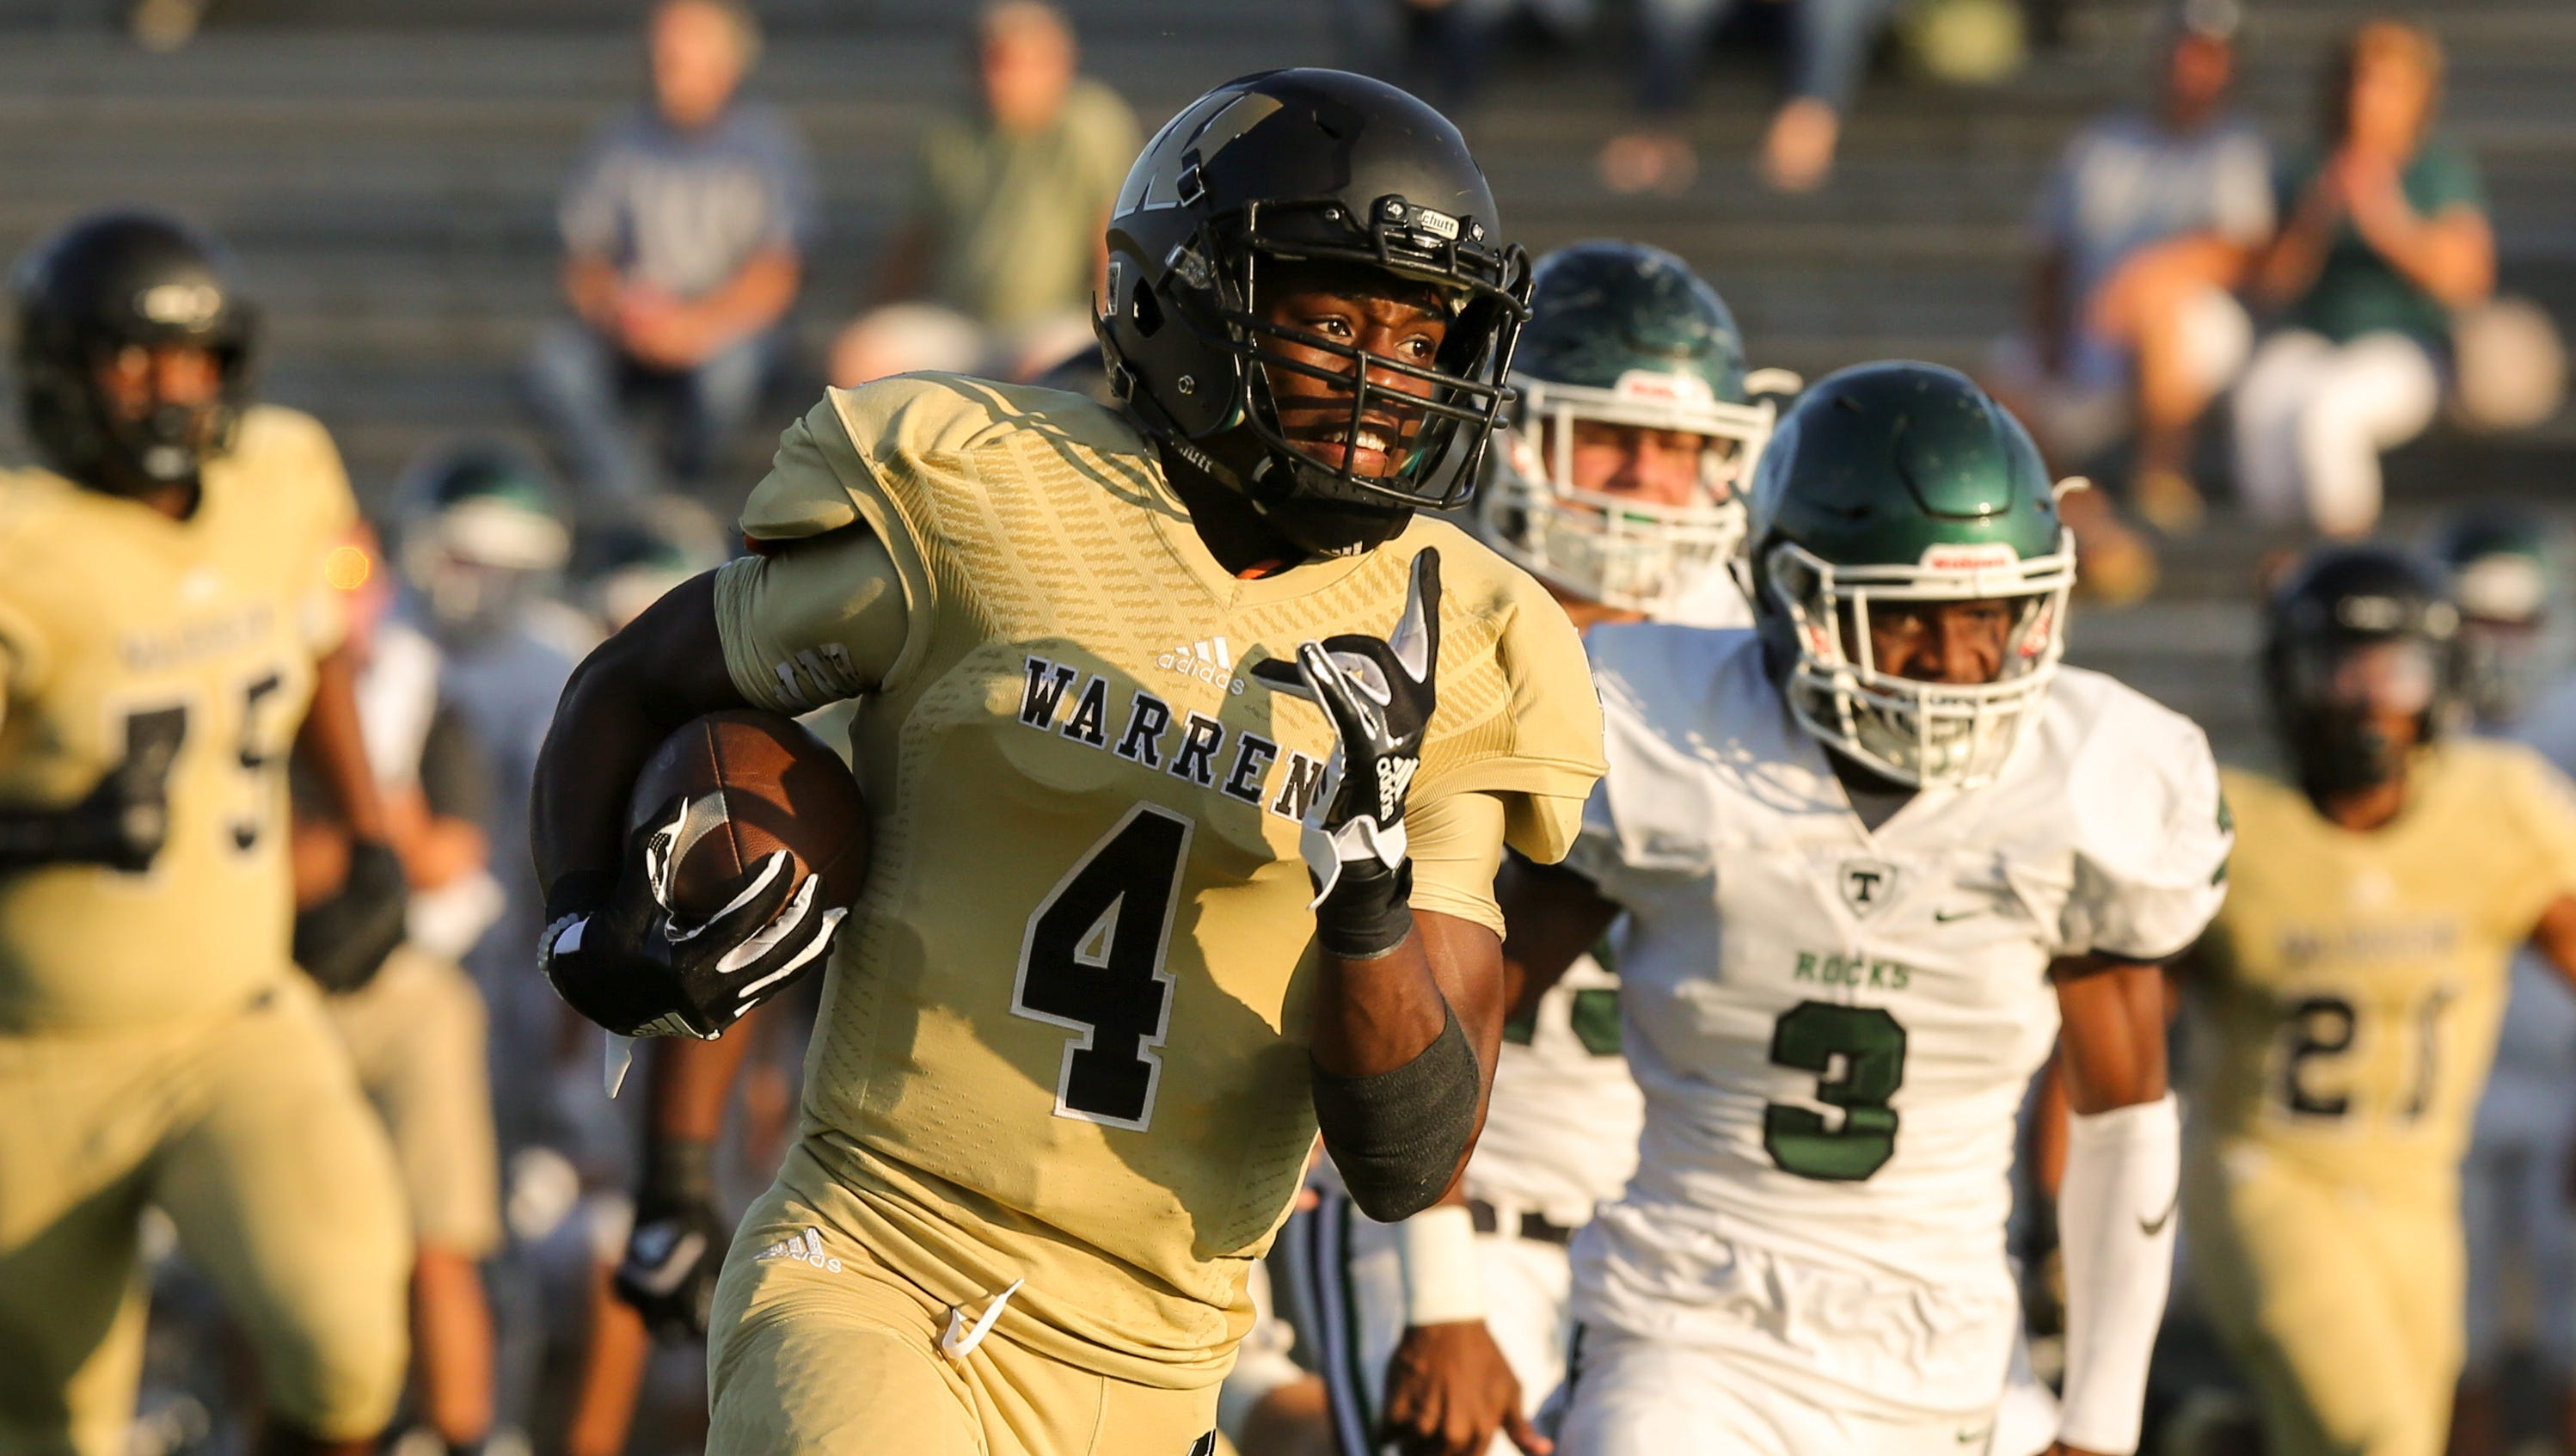 Hs Football  Warren Central Latest Indiana Power To Fall To Trinity